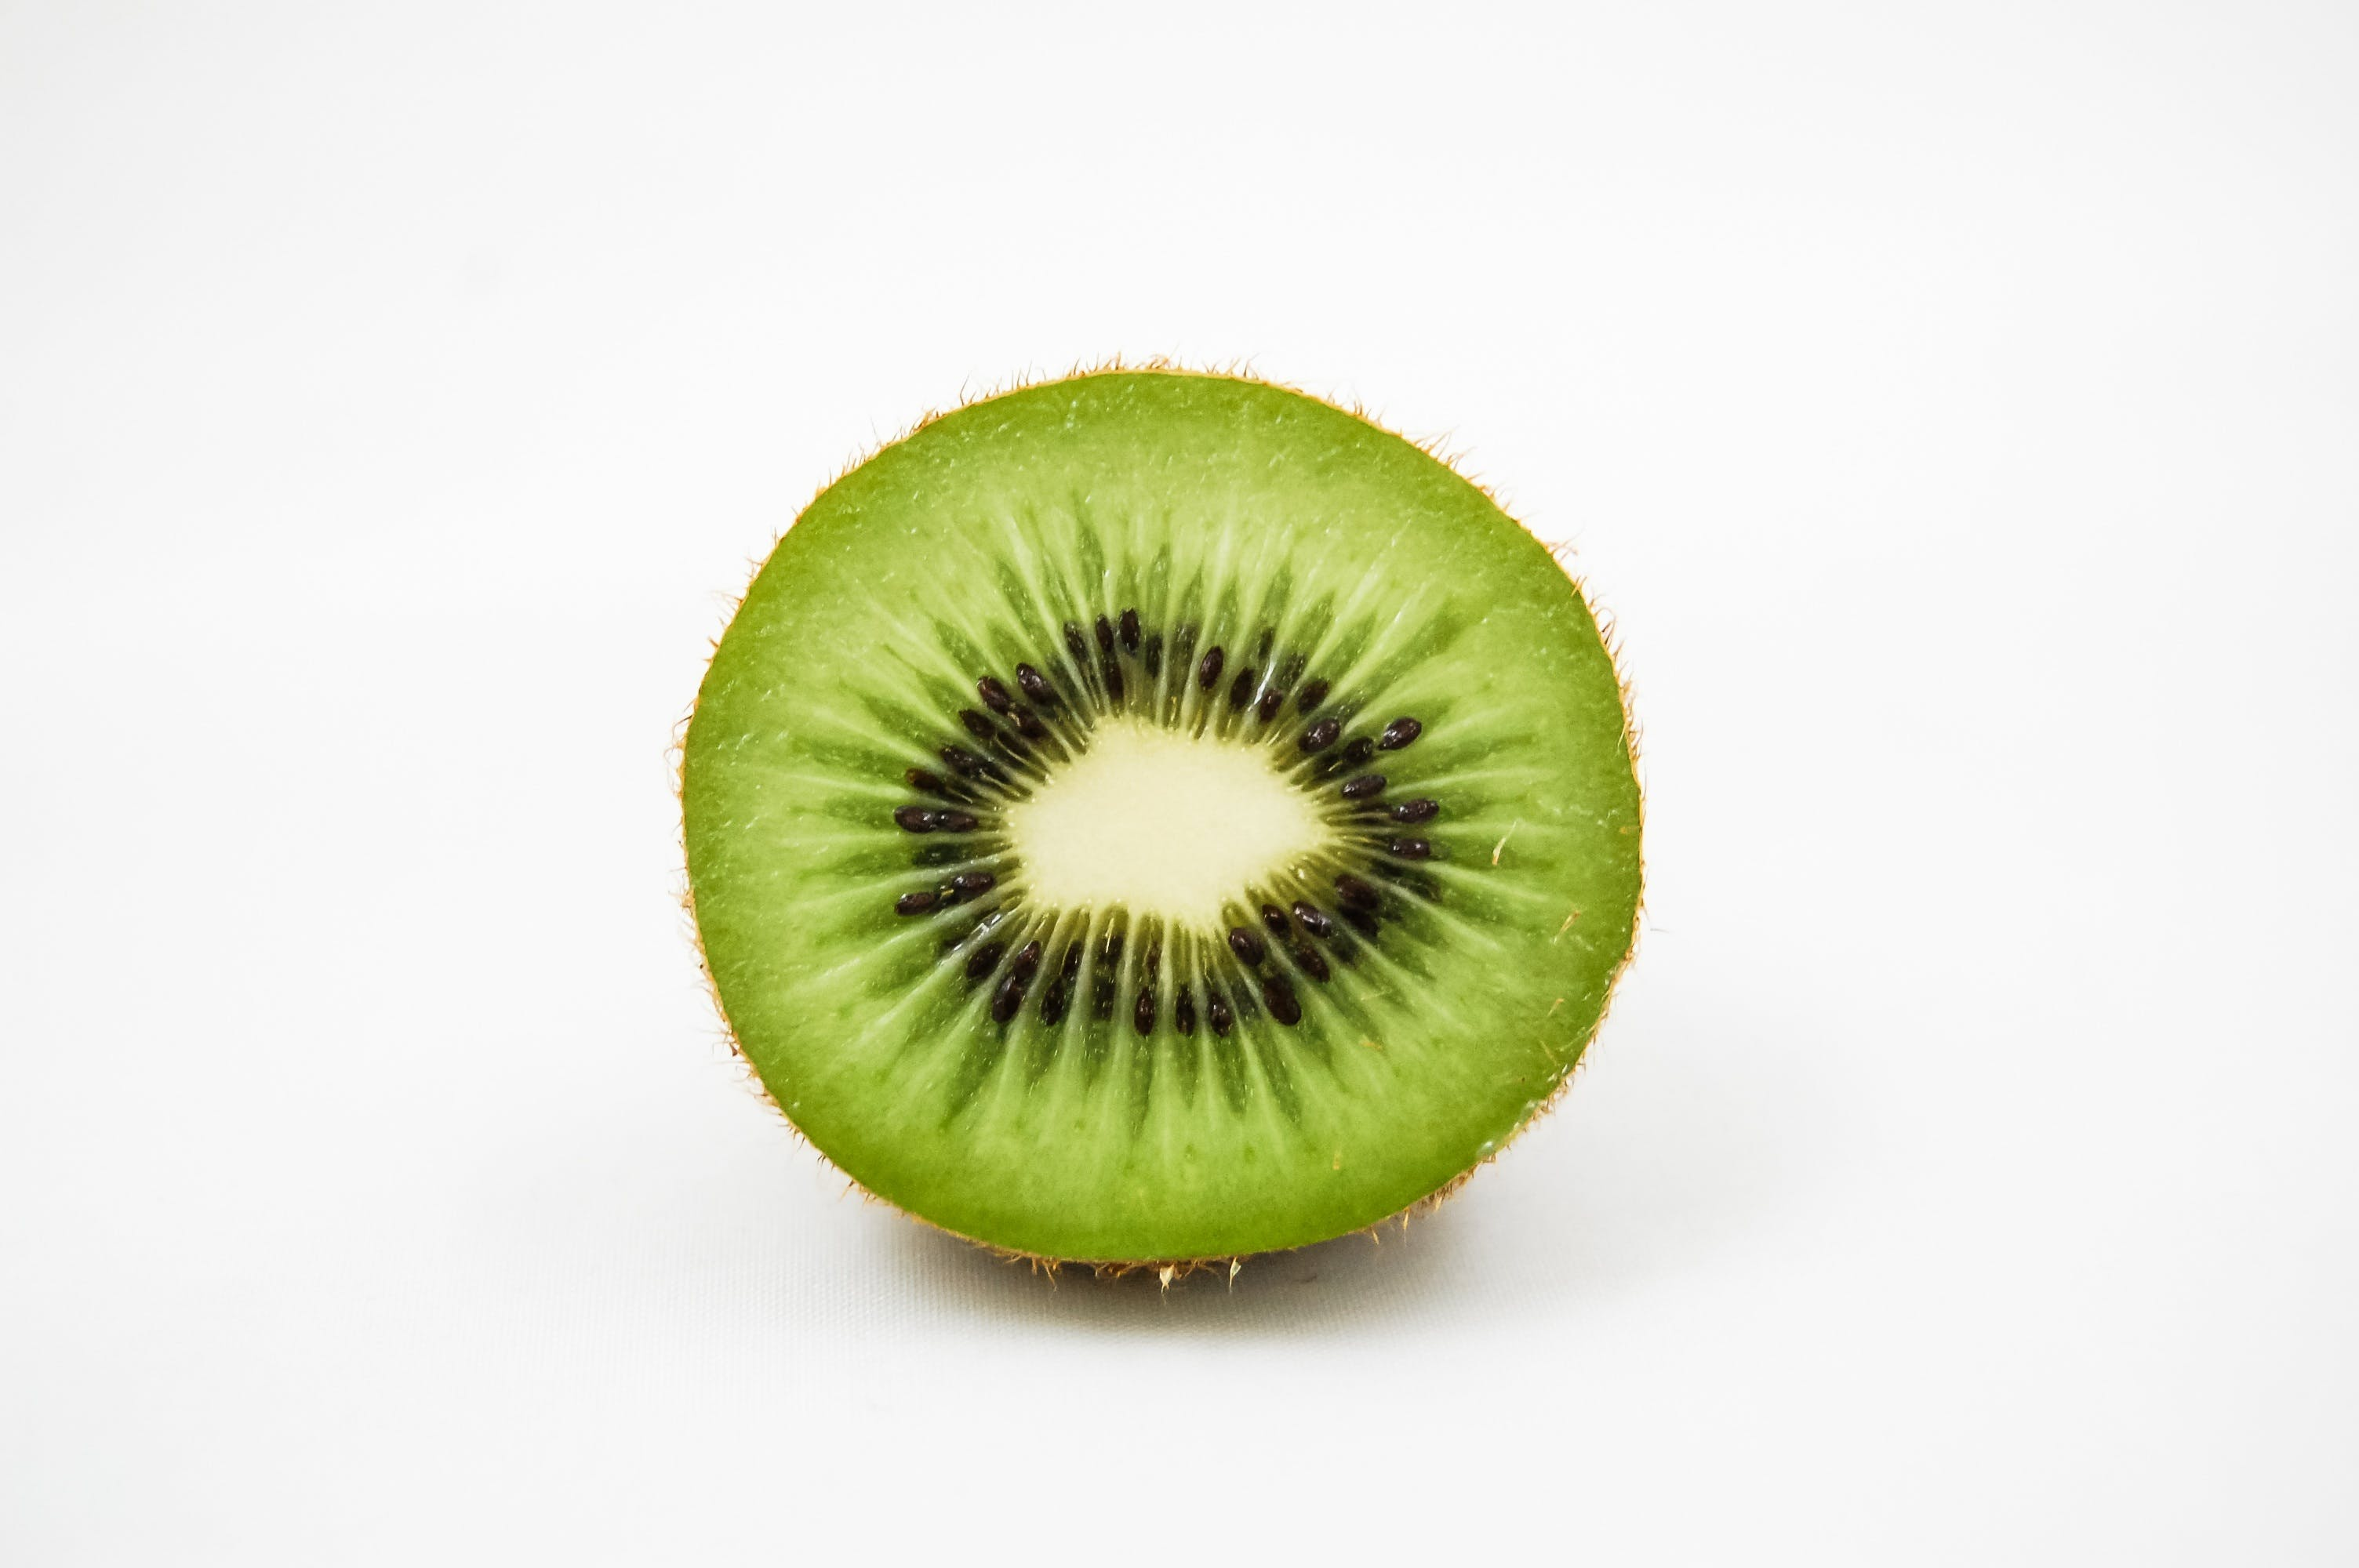 Green Kiwi Fruit